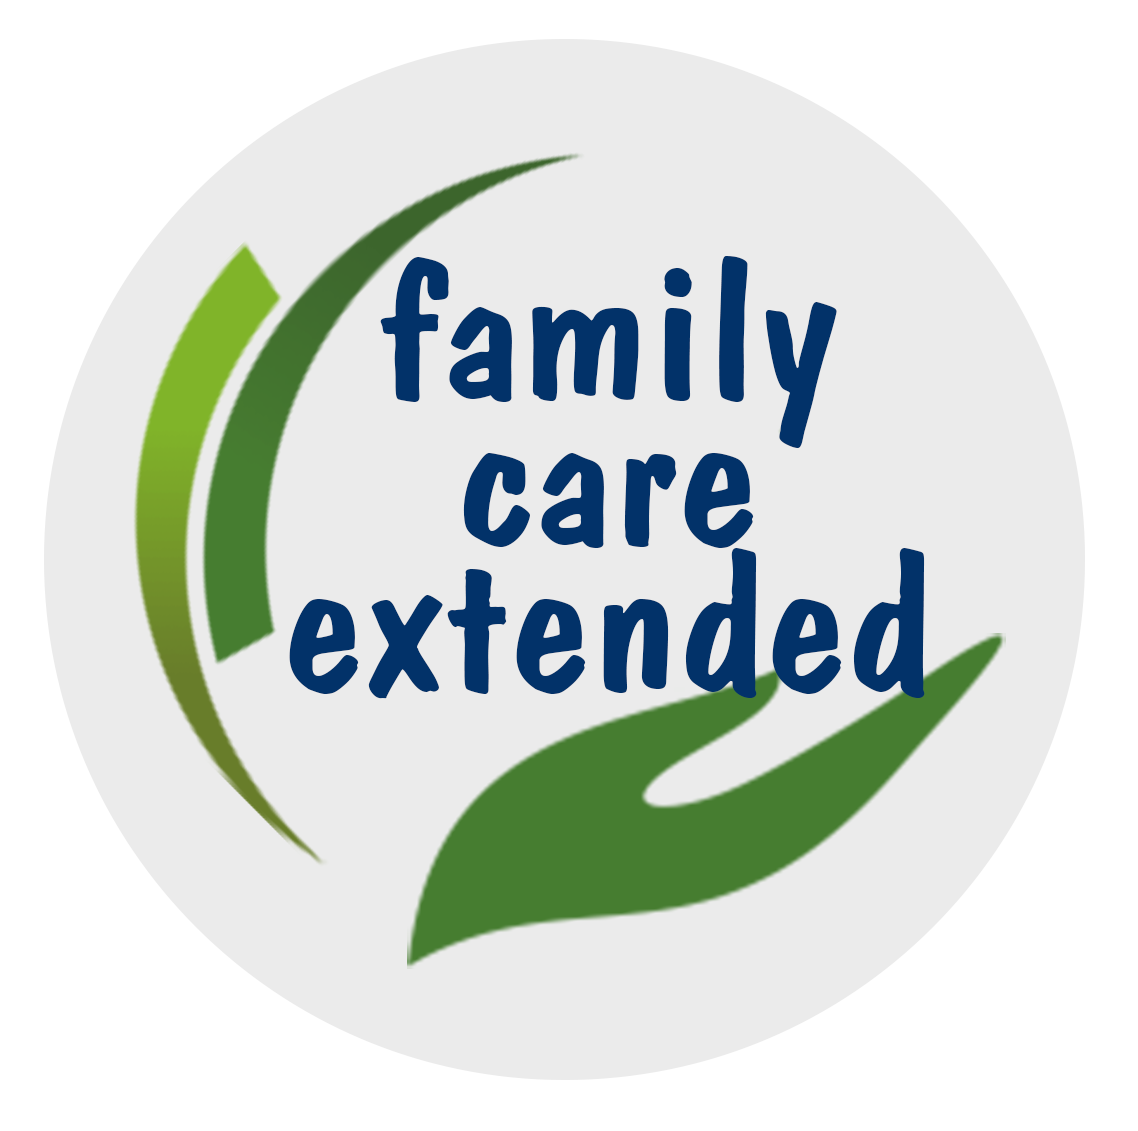 Family Care Extended